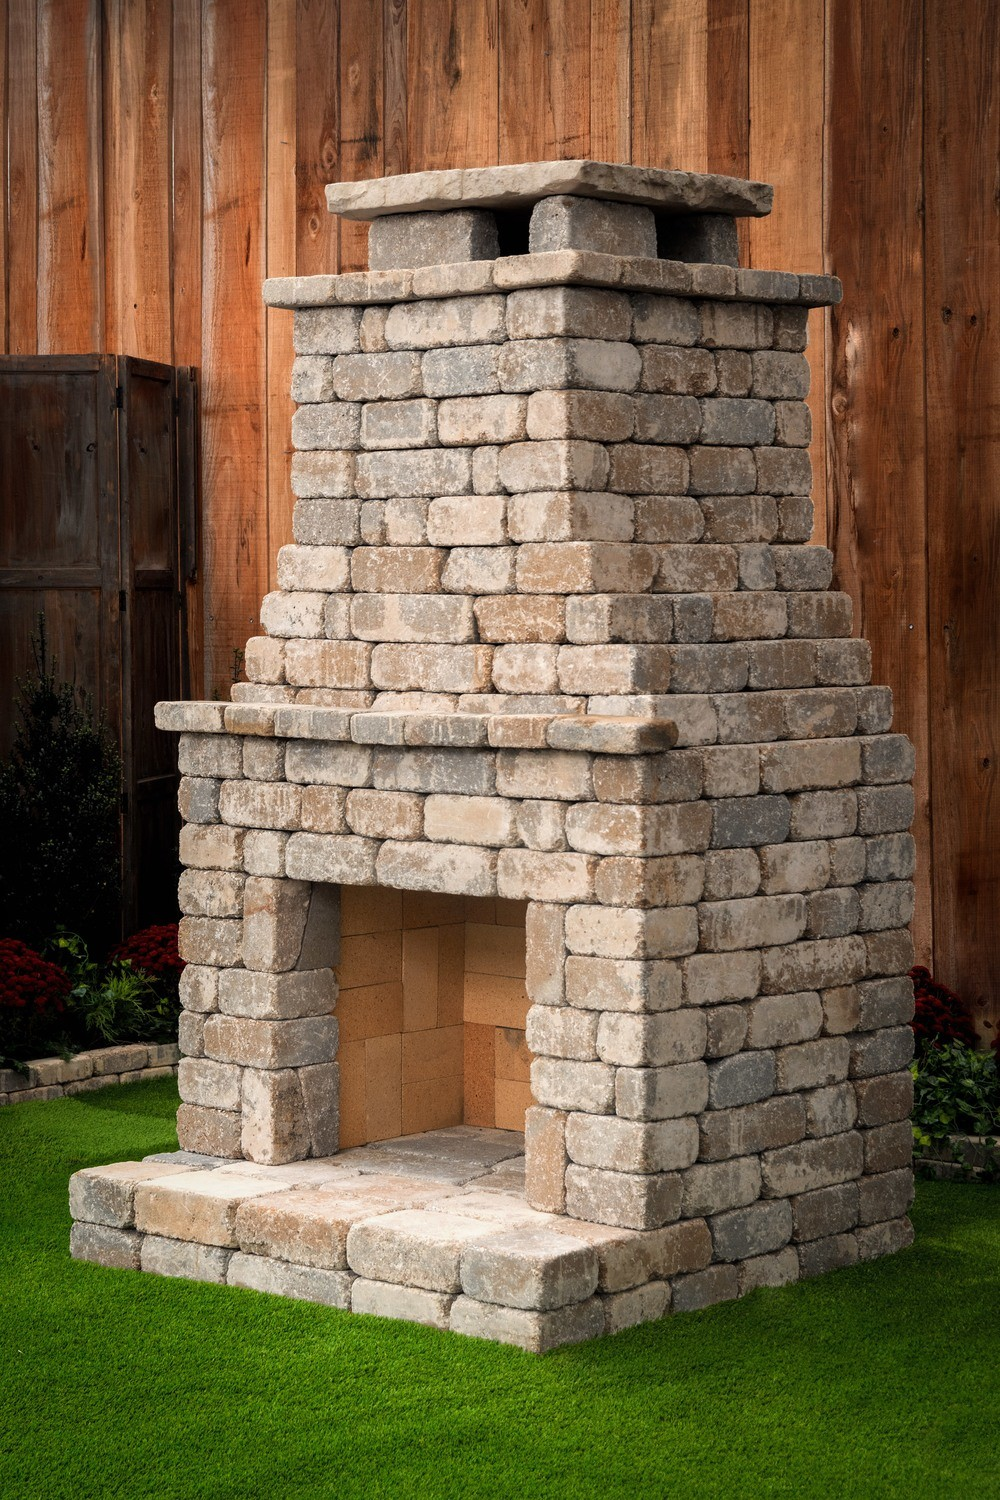 Fremont Diy Outdoor Fireplace Kit In 2020 Outdoor Fireplace Kits